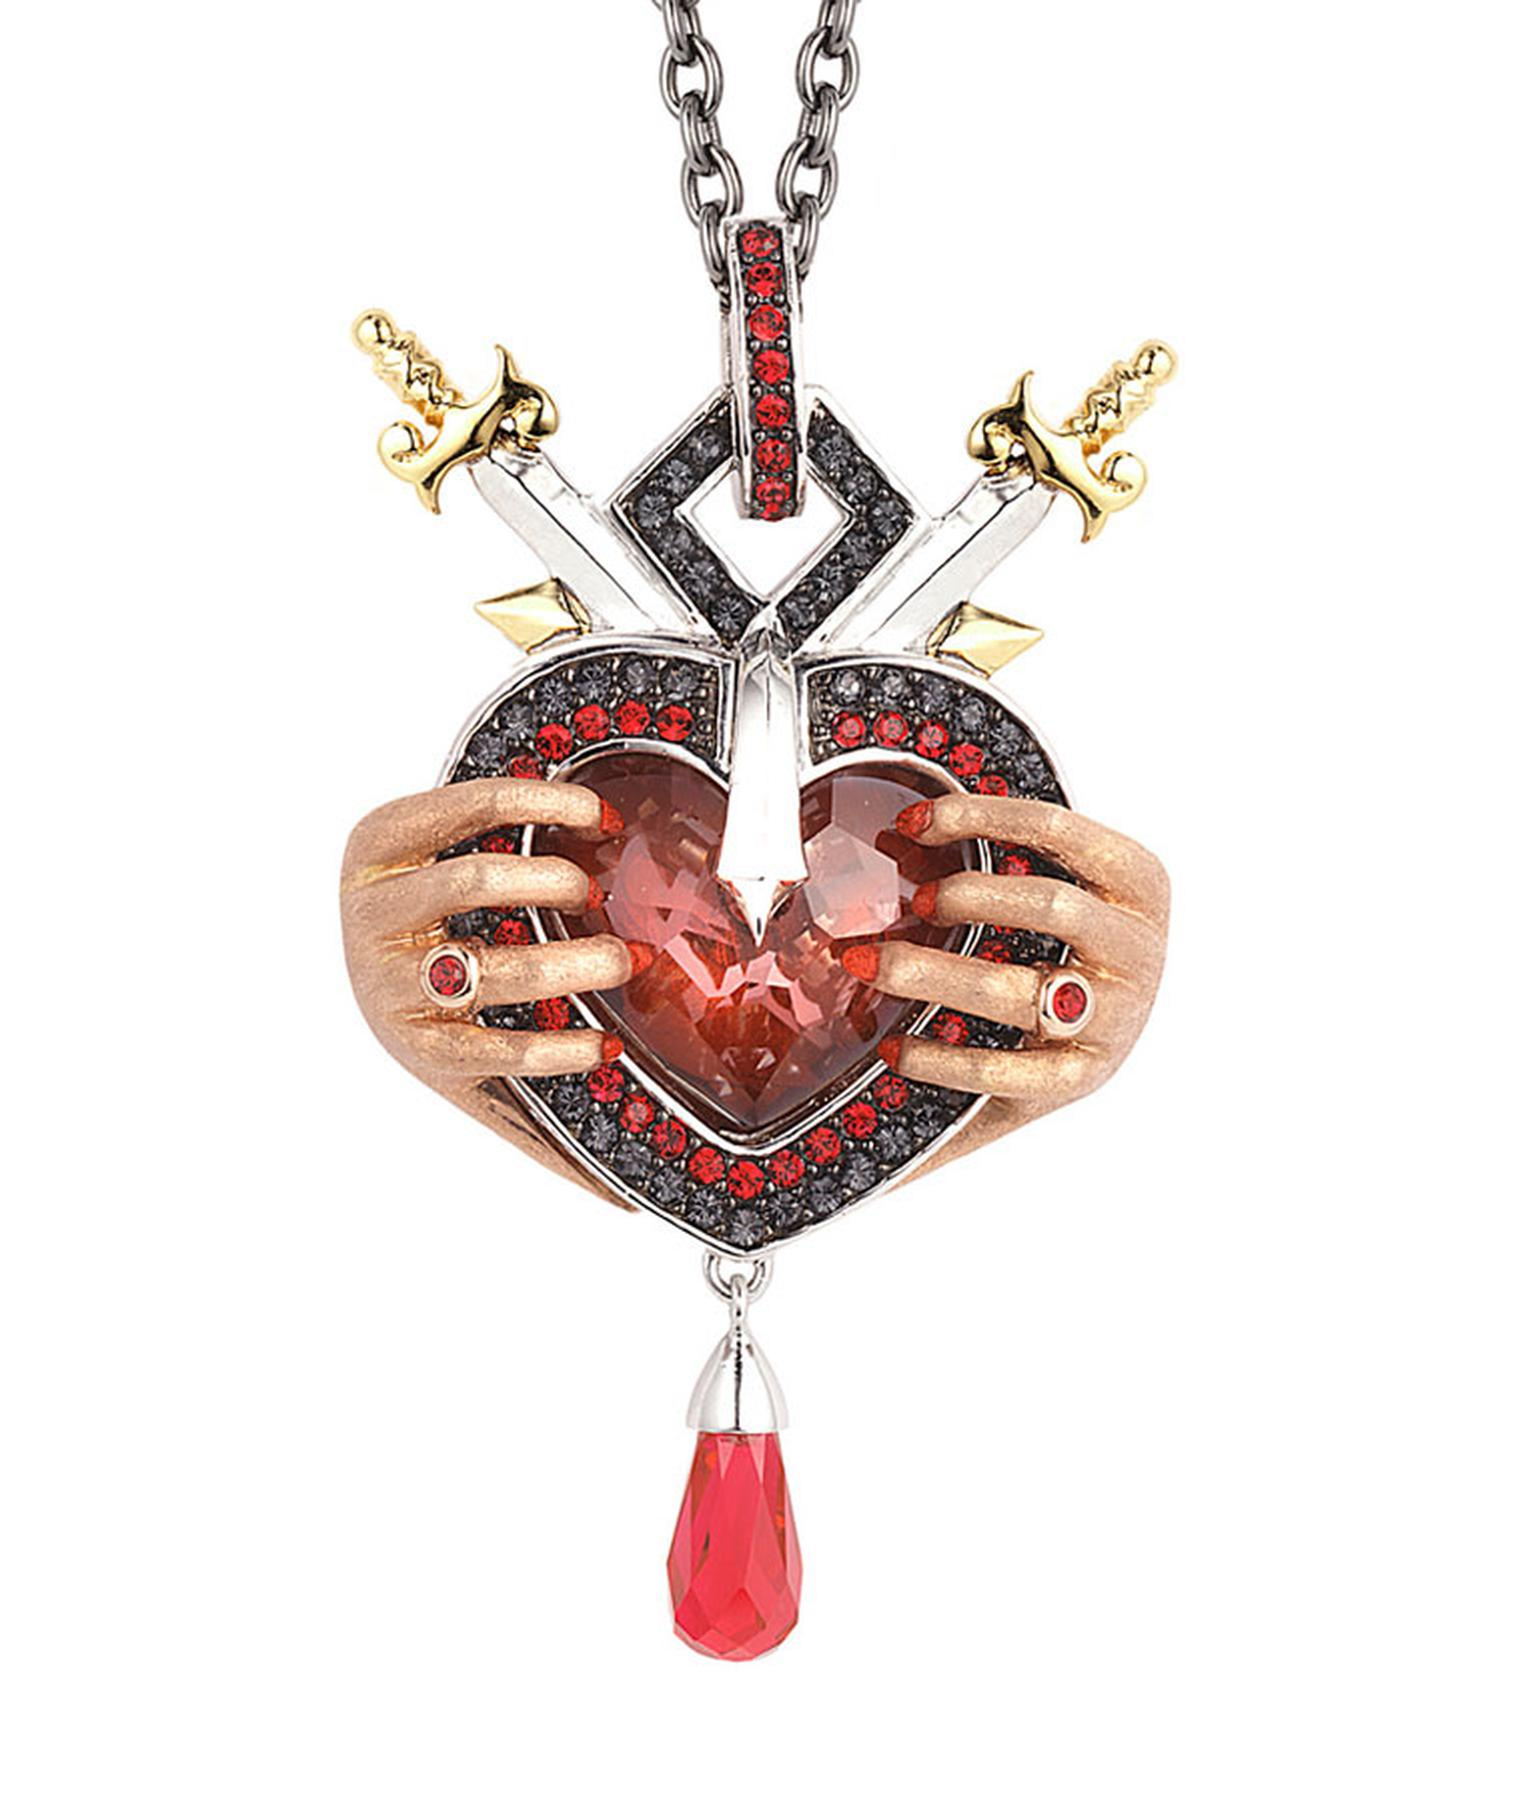 Stephen Webster Seven Deadly Sins Wrath Pendant set in sterling silver with pave crystals Price from 650